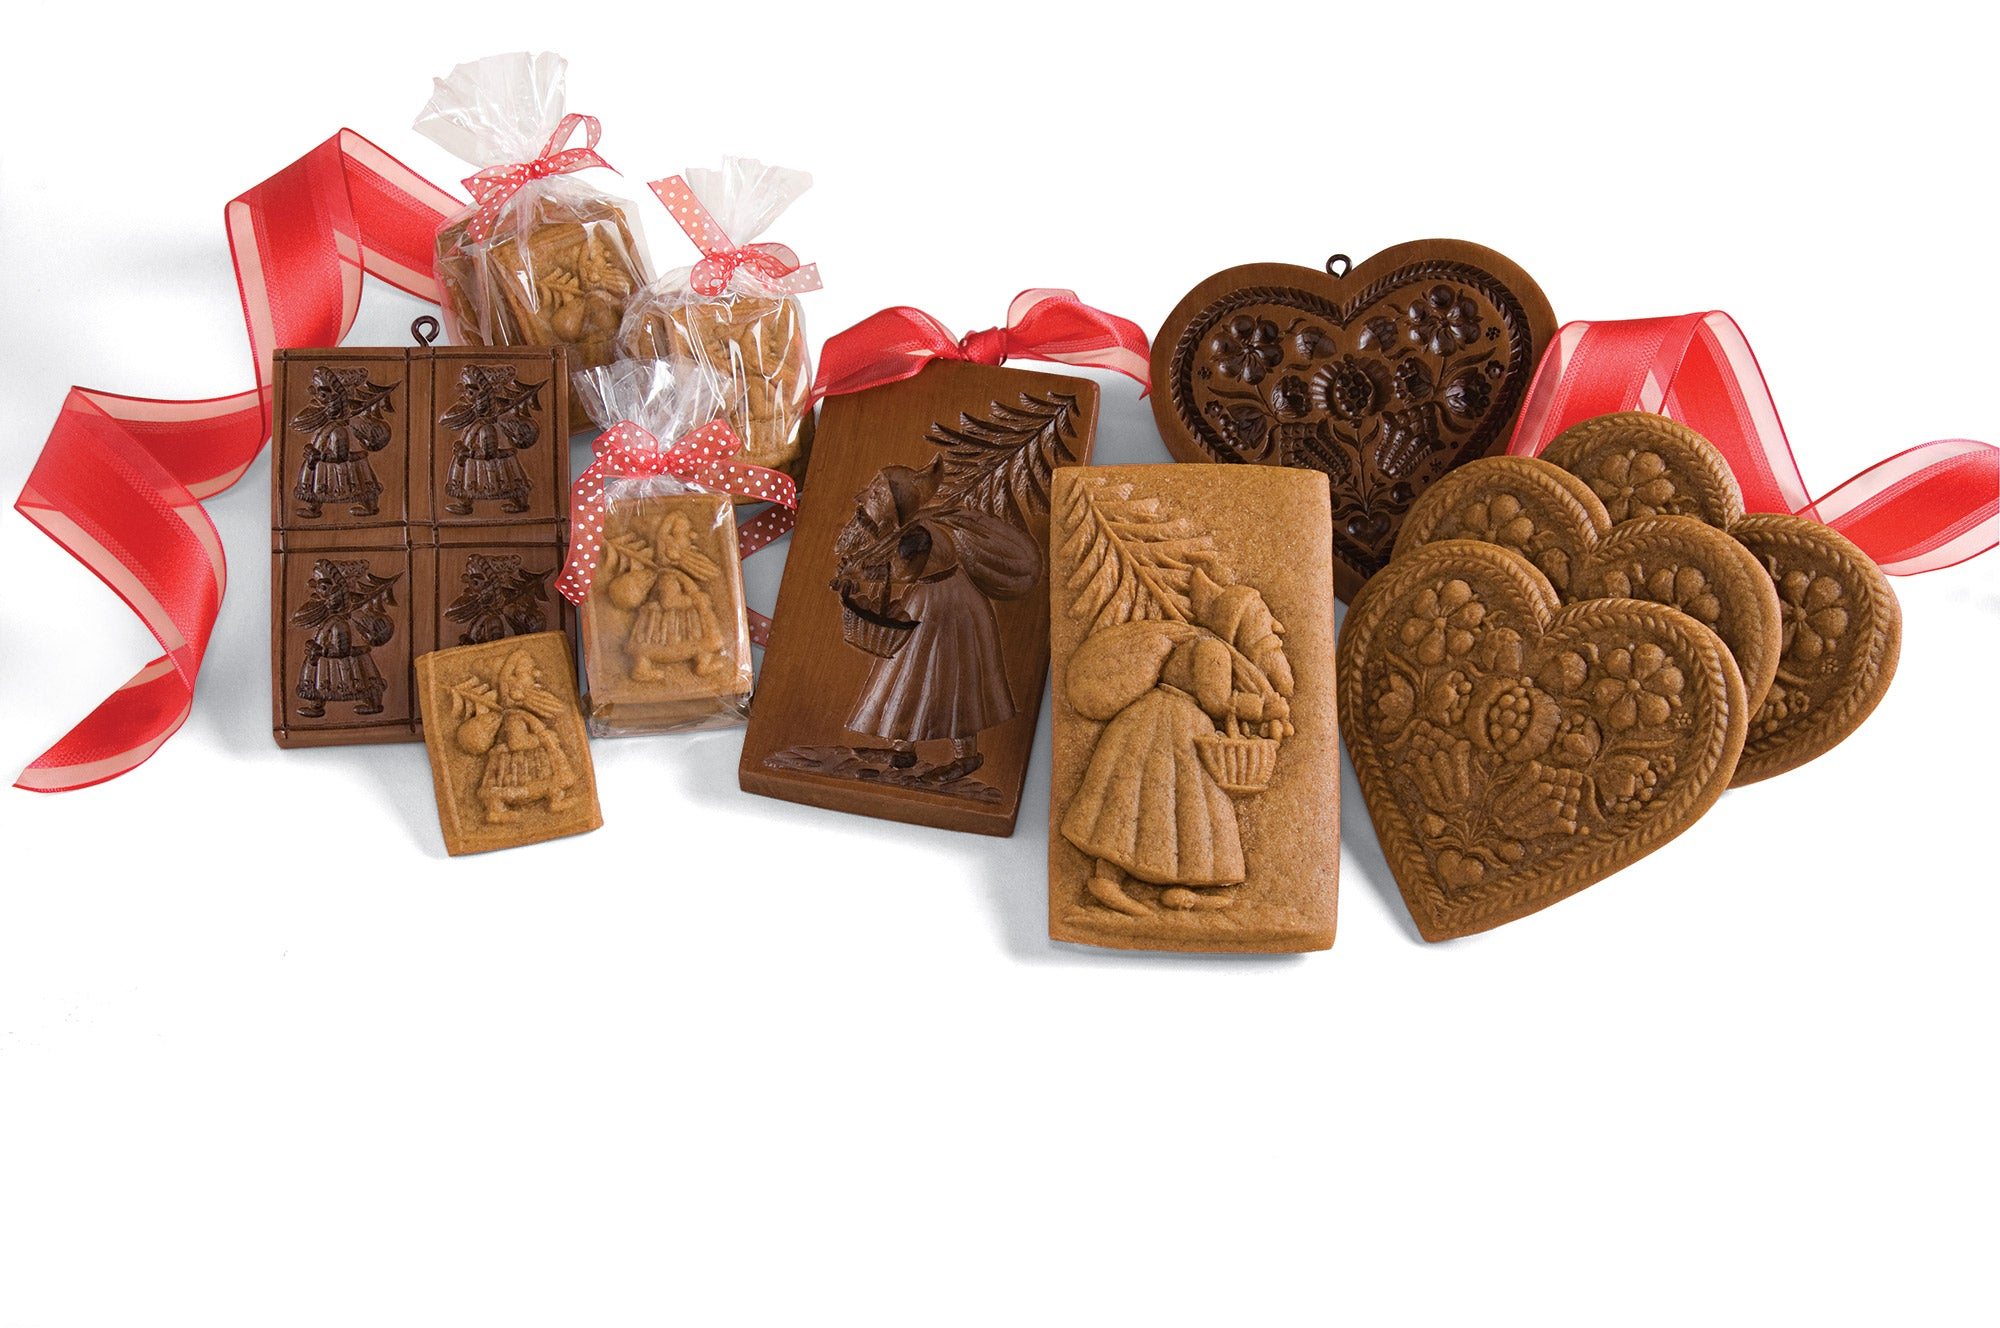 Petite Fleurs and 3 Rosettes Springerle Cookie Molds available at I Love Springerle